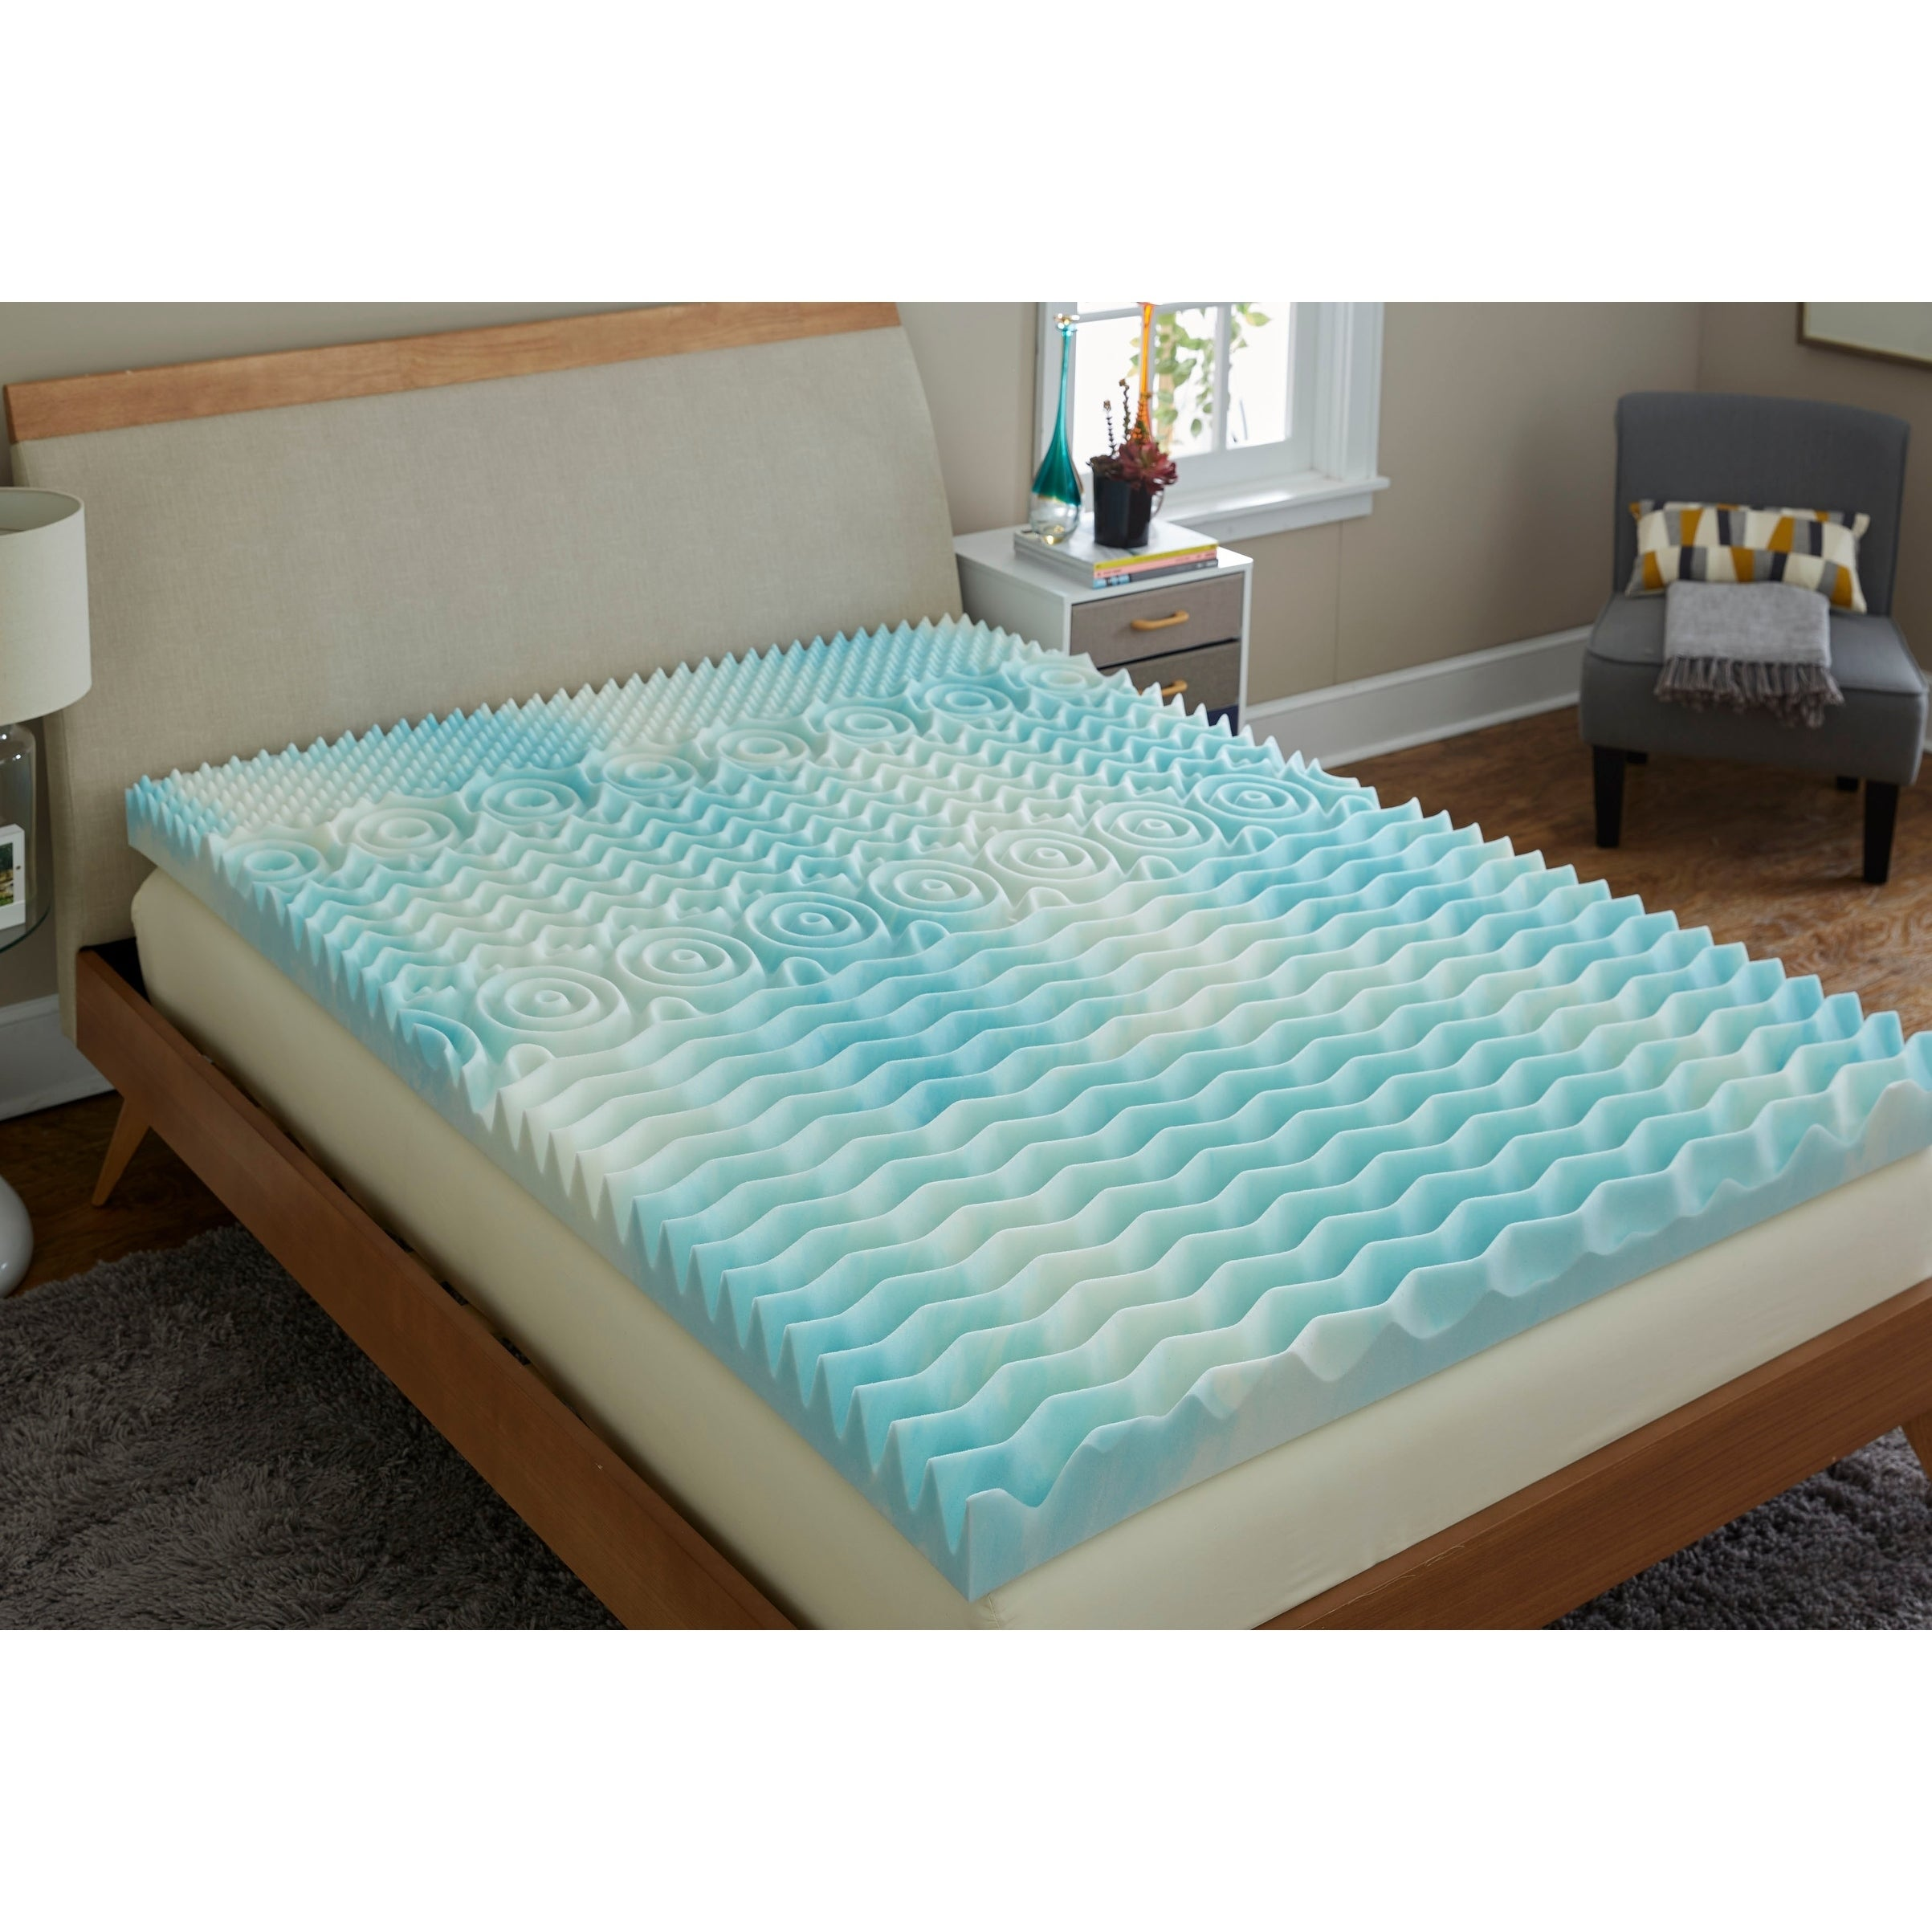 TruPedic USA CoolFlow 4-inch 5 Zone Textured Gel Memory F...